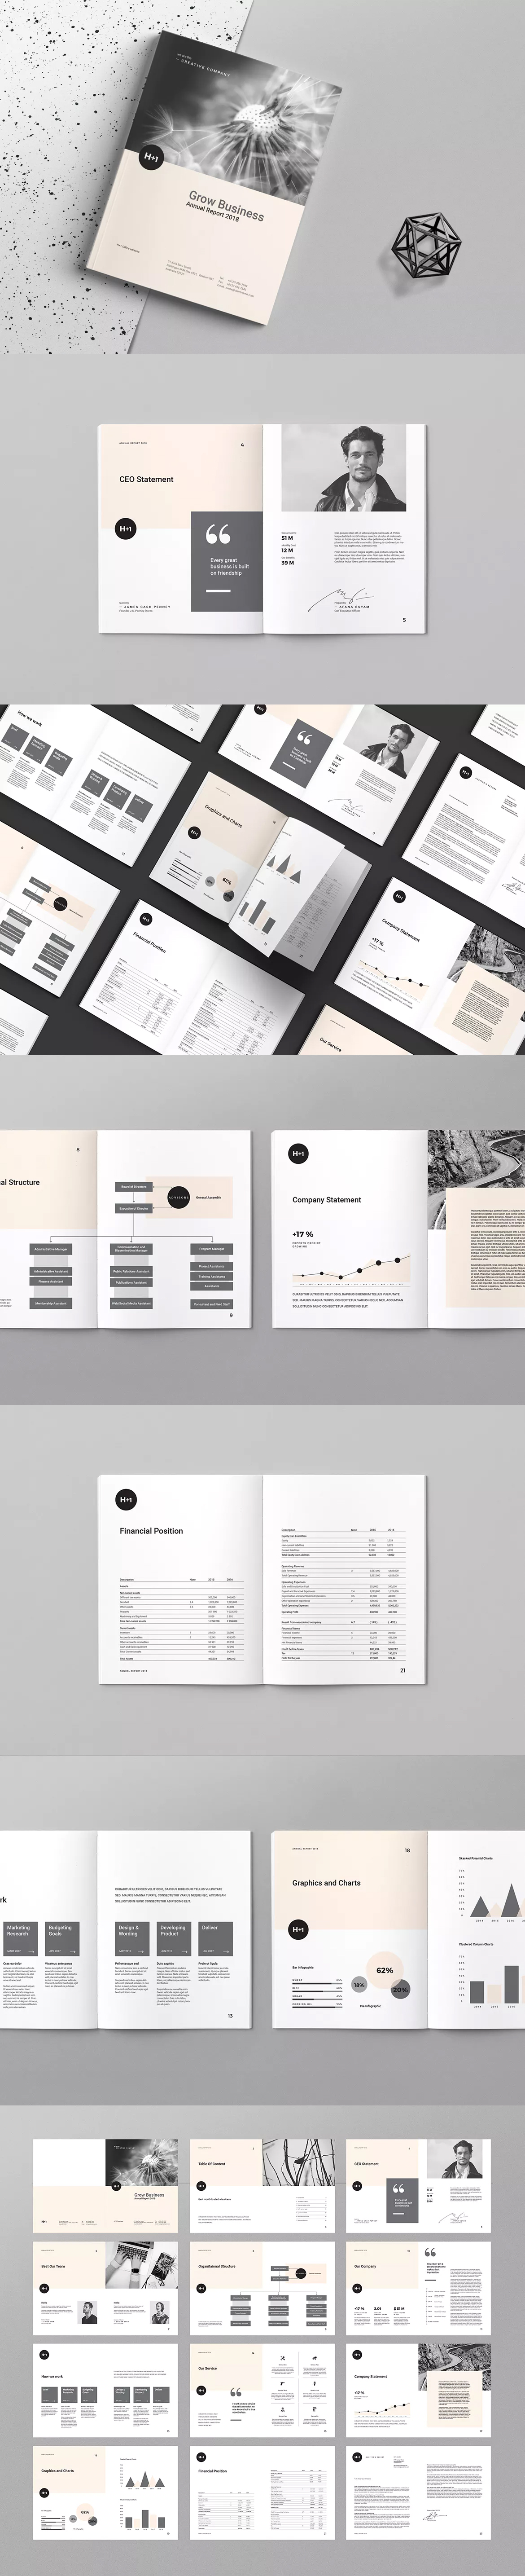 Annual Report Template InDesign INDD - US Letter and A4 Size ...